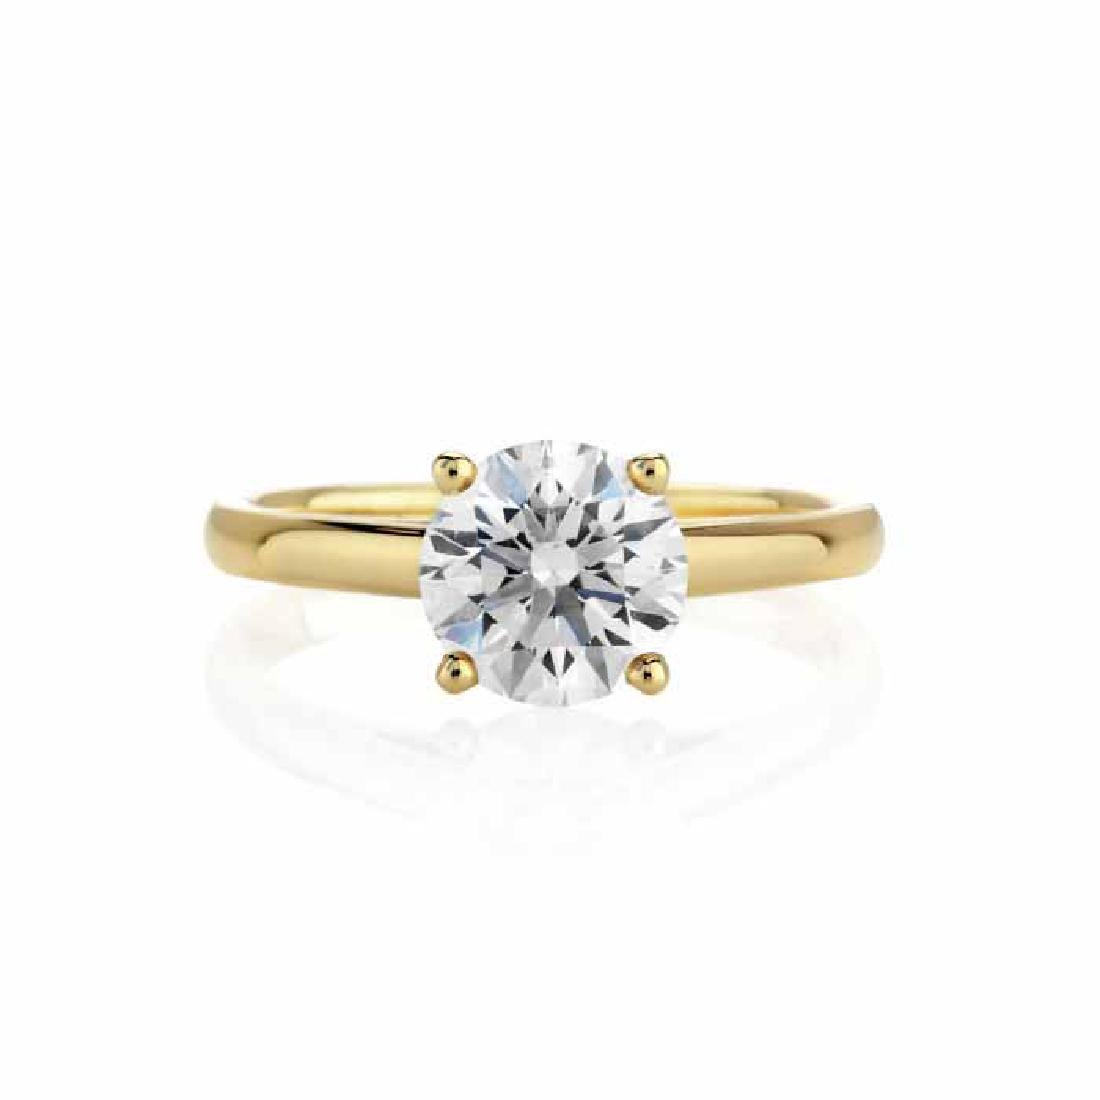 CERTIFIED 0.7 CTW J/I1 ROUND DIAMOND SOLITAIRE RING IN